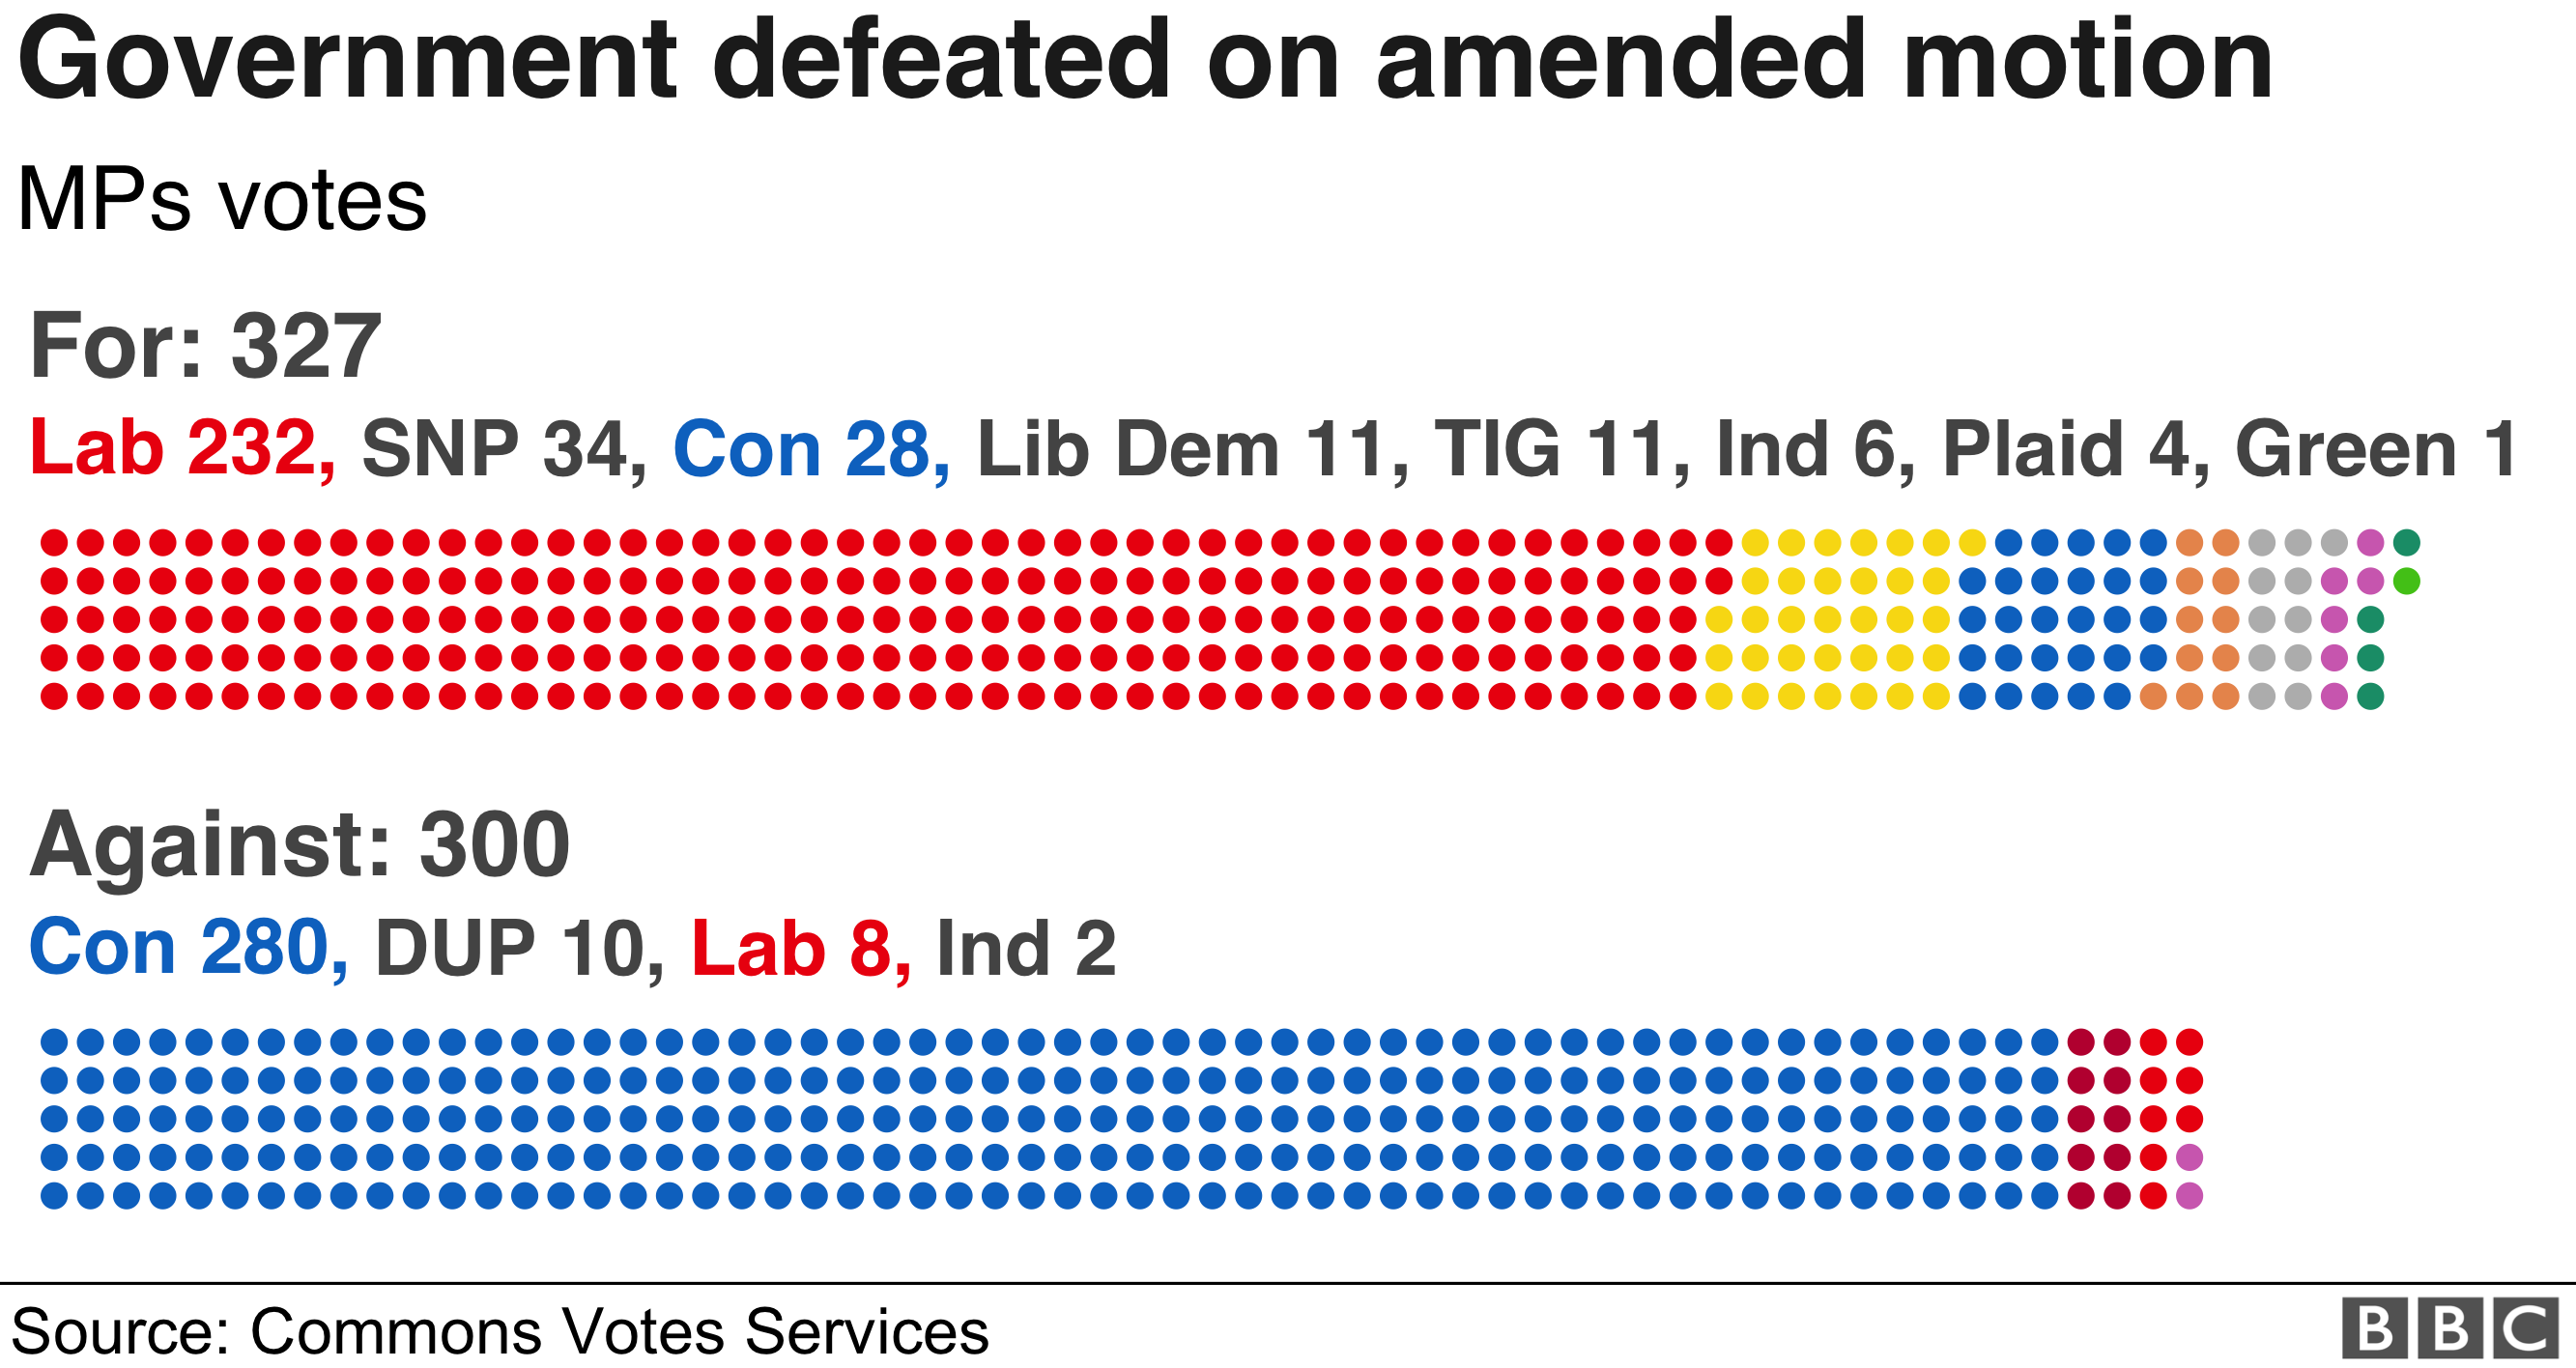 Breakdown of the vote on the amended motion